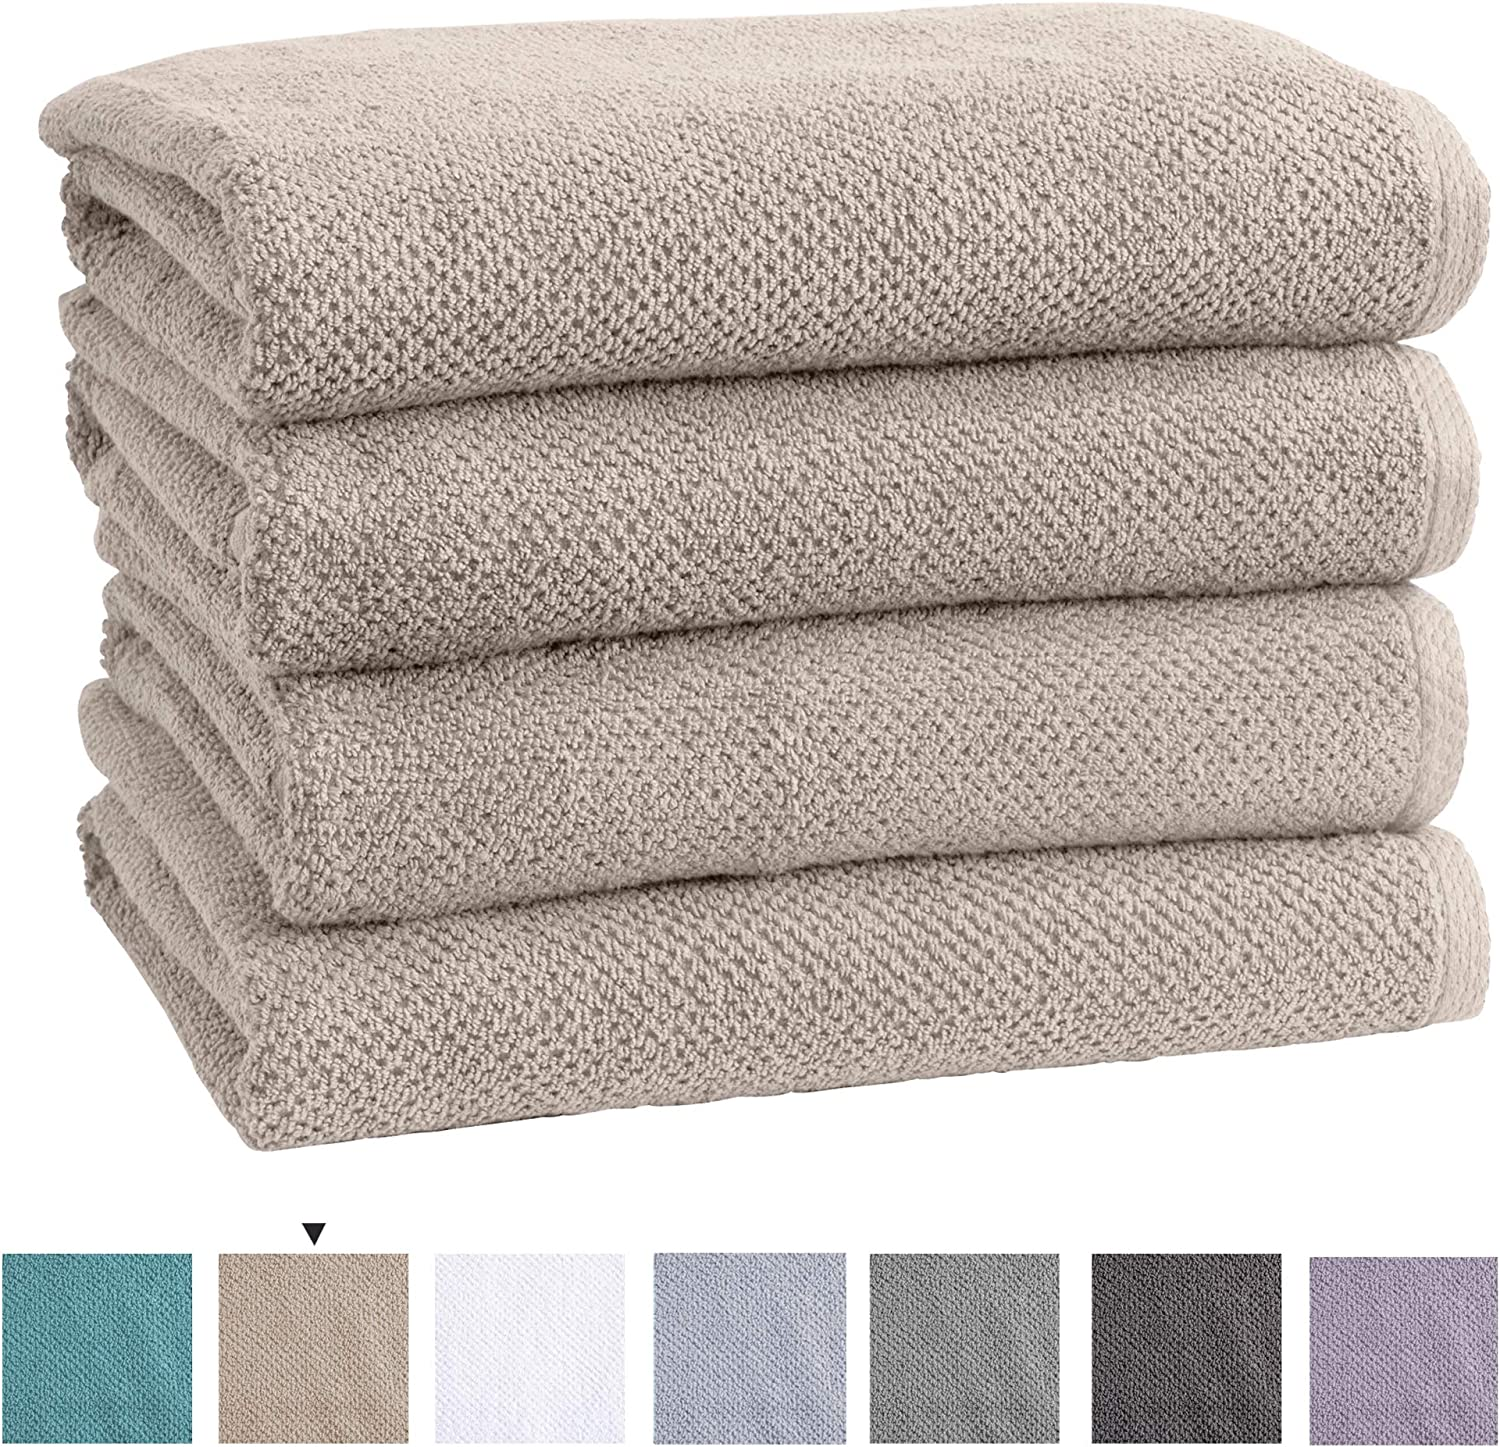 Great Bay Home 100% Cotton Quick-Dry Bath Towel Set (30 x 52 inches) Highly Absorbent, Textured Popcorn Weave Bath Towels. Acacia Collection (Set of 4, Silver Cloud)